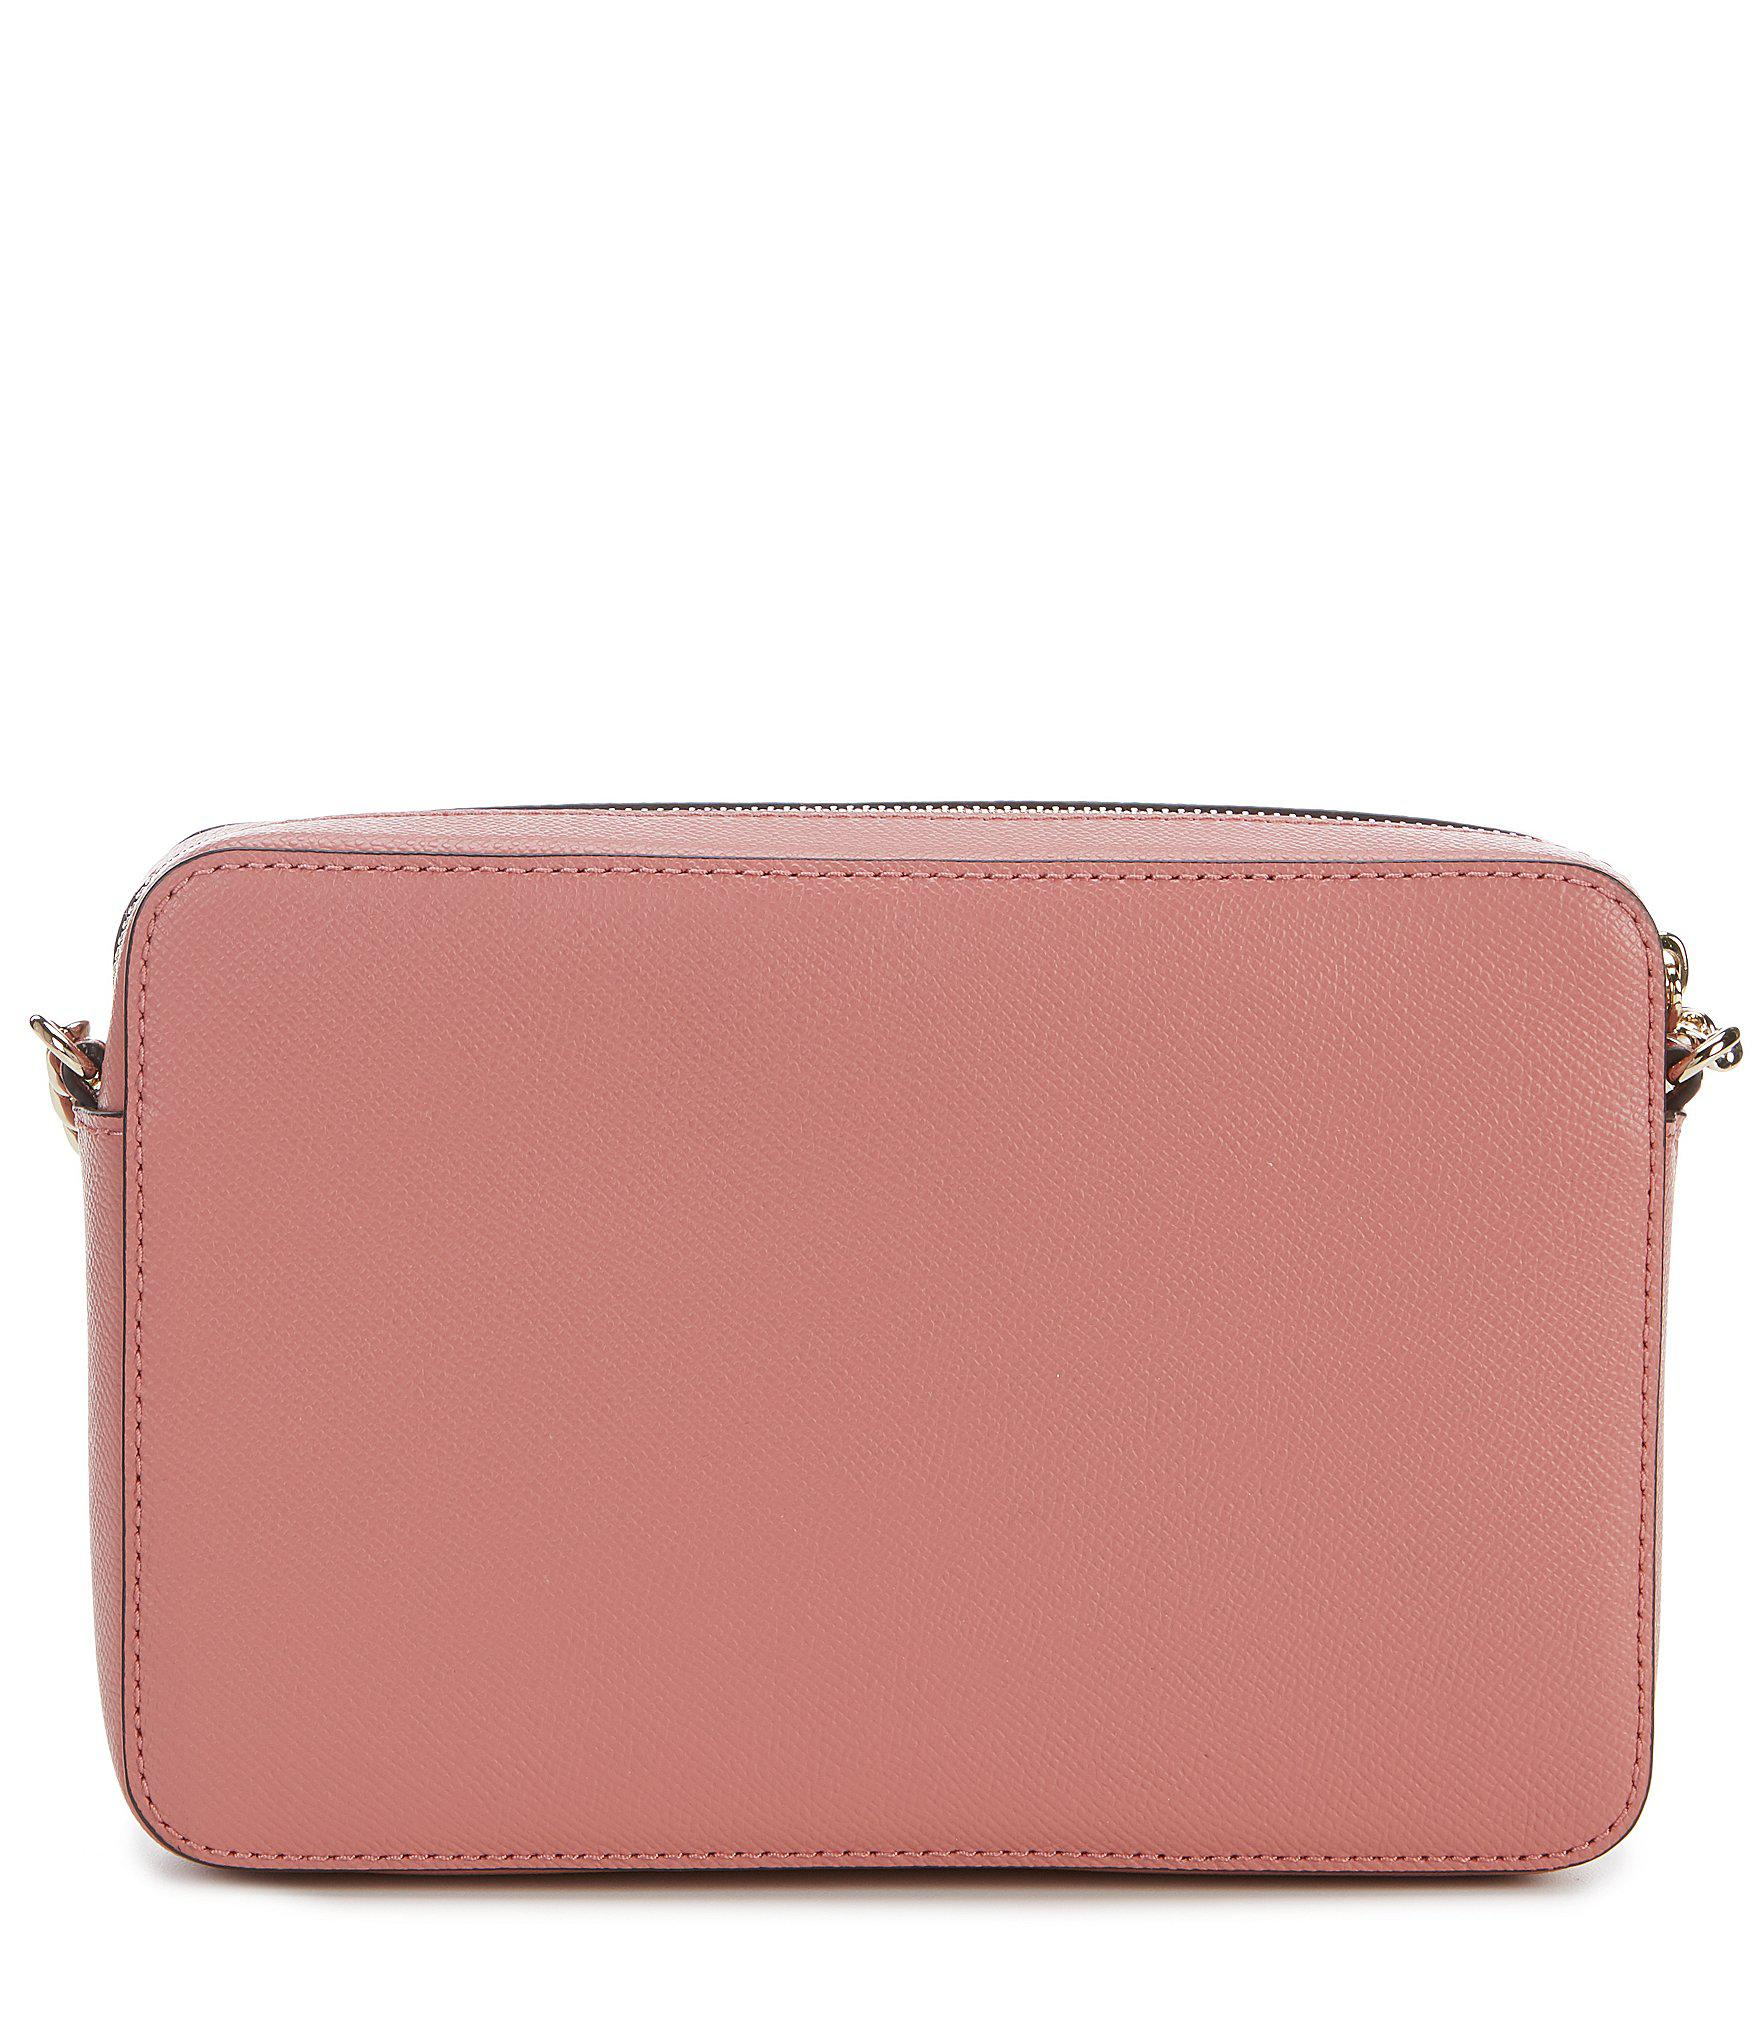 c11286cdbf43 Lyst - MICHAEL Michael Kors Large East west Cross-body Bag in Pink